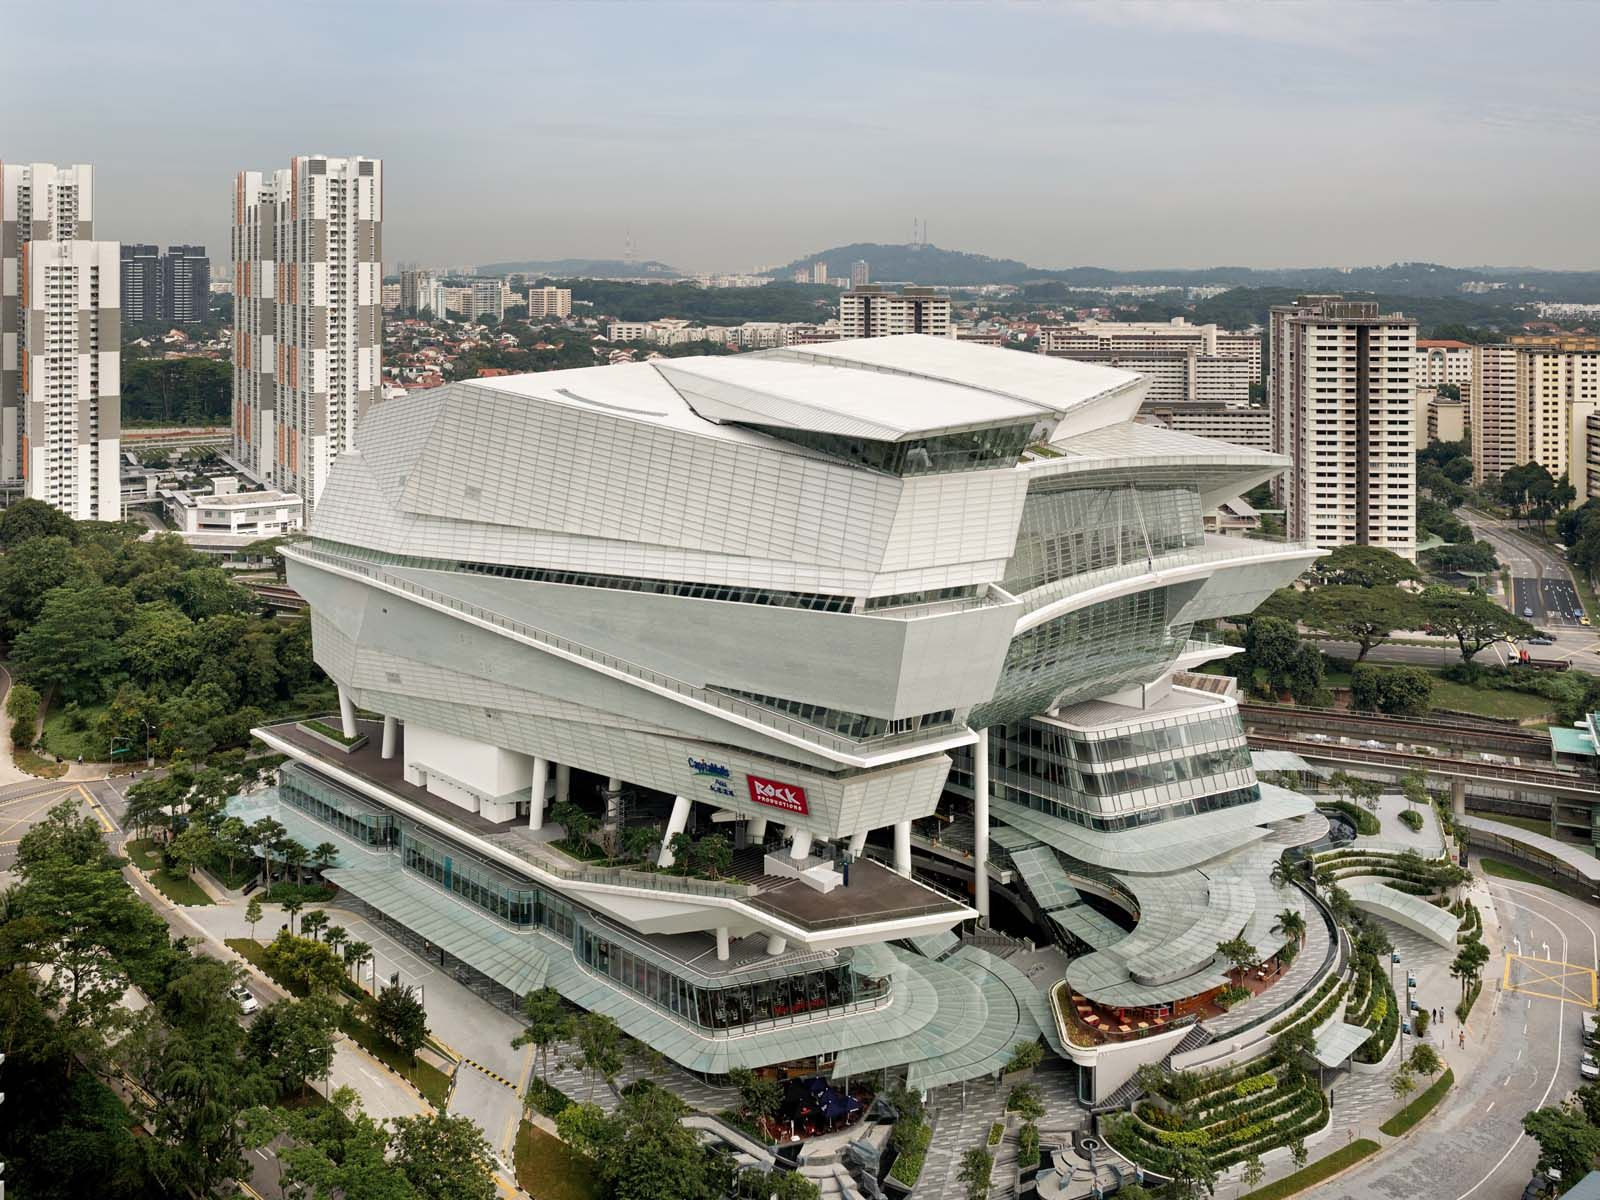 The Star Performing Arts Centre Auditorium Art Center Or You Go For Instance To Electronic Shop Downstairs At Tukcom